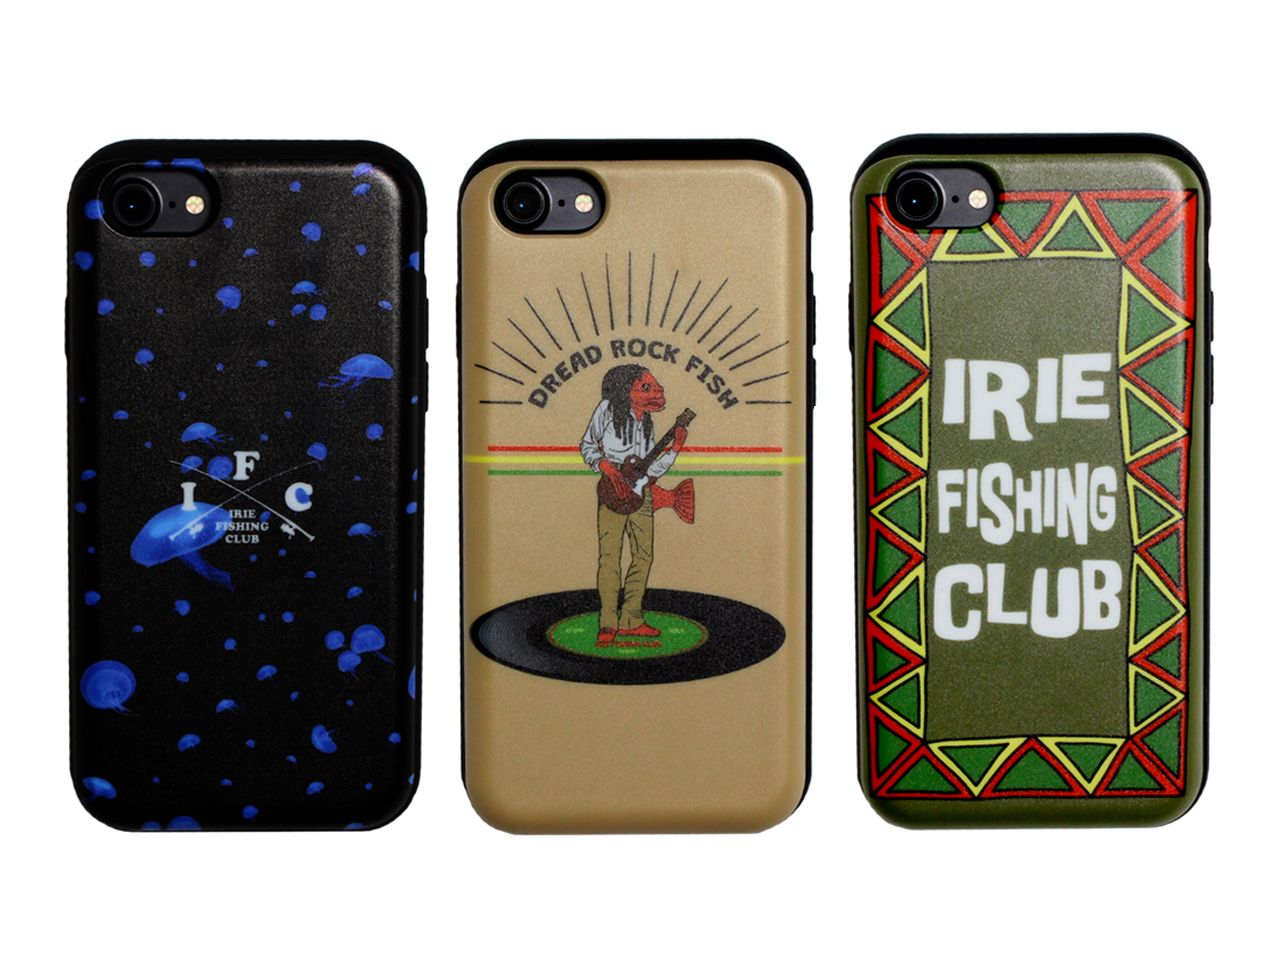 I.F.C CARD SLIDE iPhone CASE -IRIE FISHING CLUB-